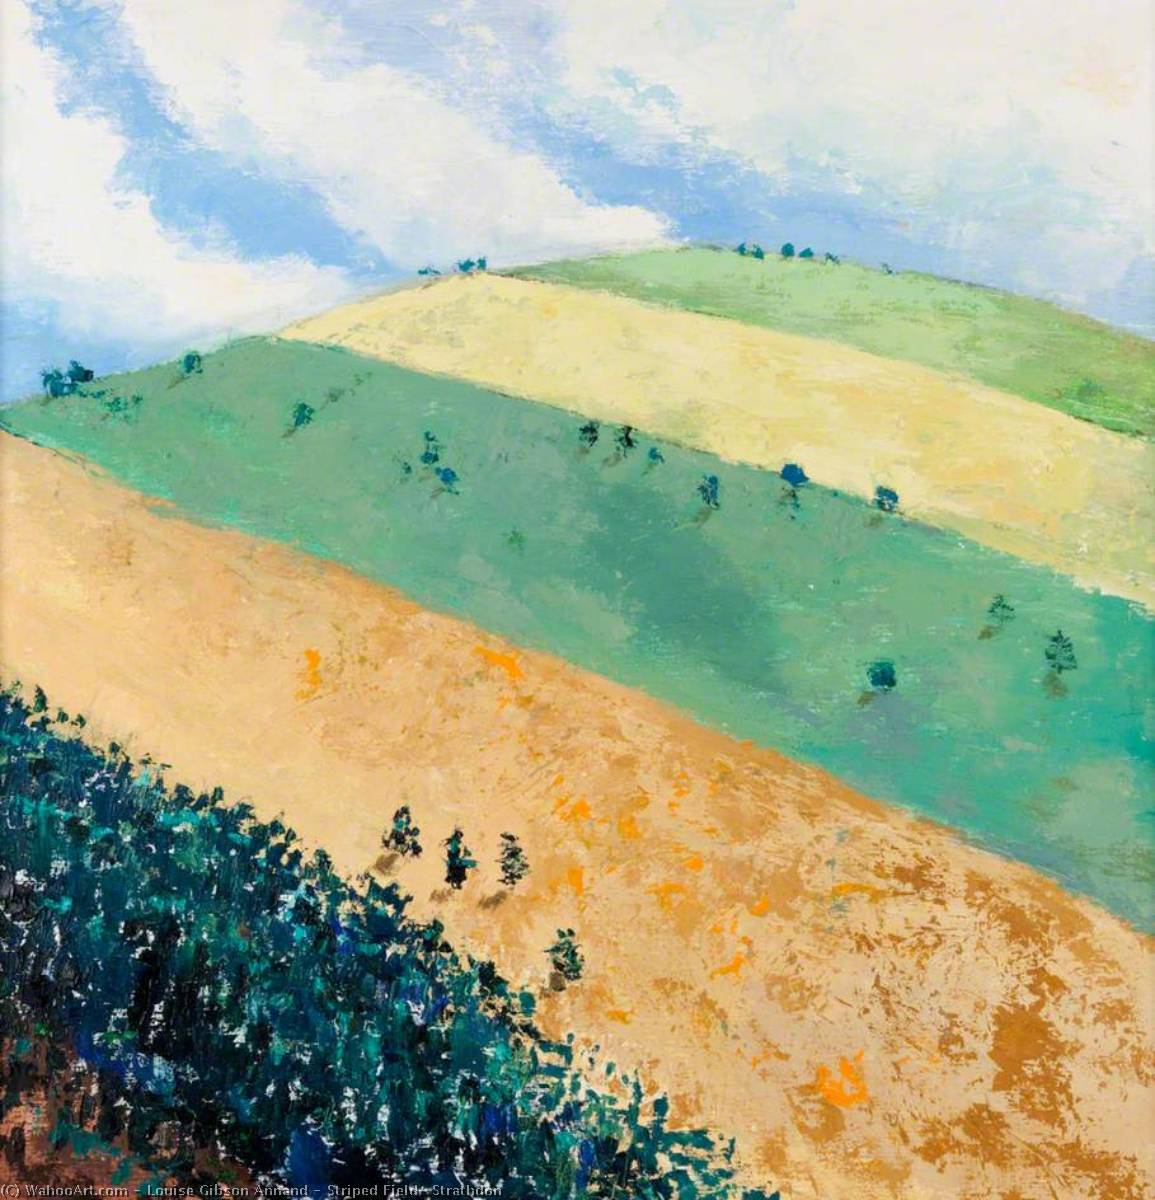 Striped Field, Strathdon, 2001 by Louise Gibson Annand | Reproductions Louise Gibson Annand | WahooArt.com